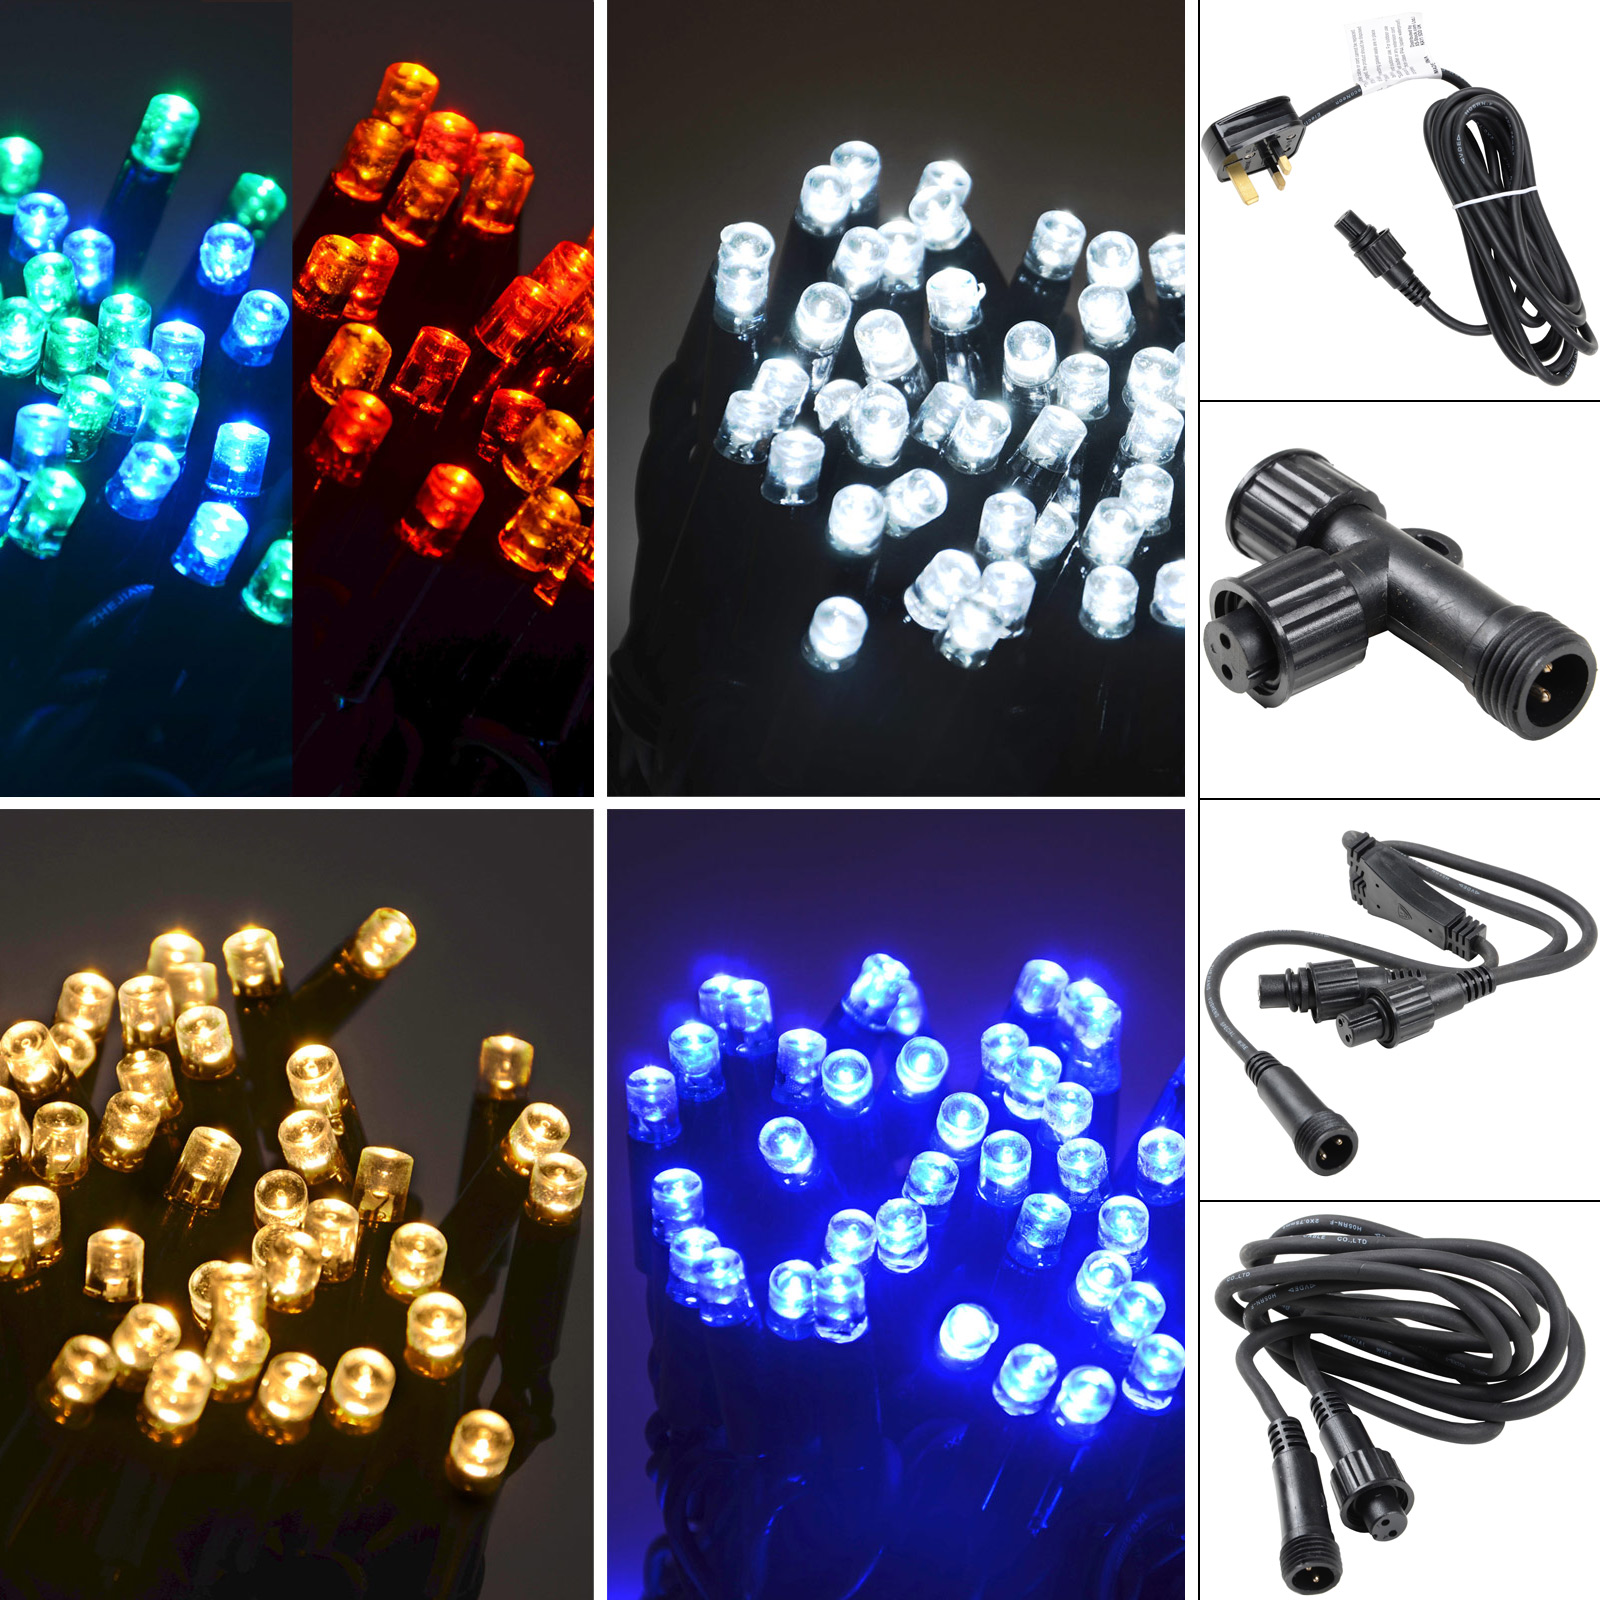 connectable string lights 100 led sets power cord. Black Bedroom Furniture Sets. Home Design Ideas